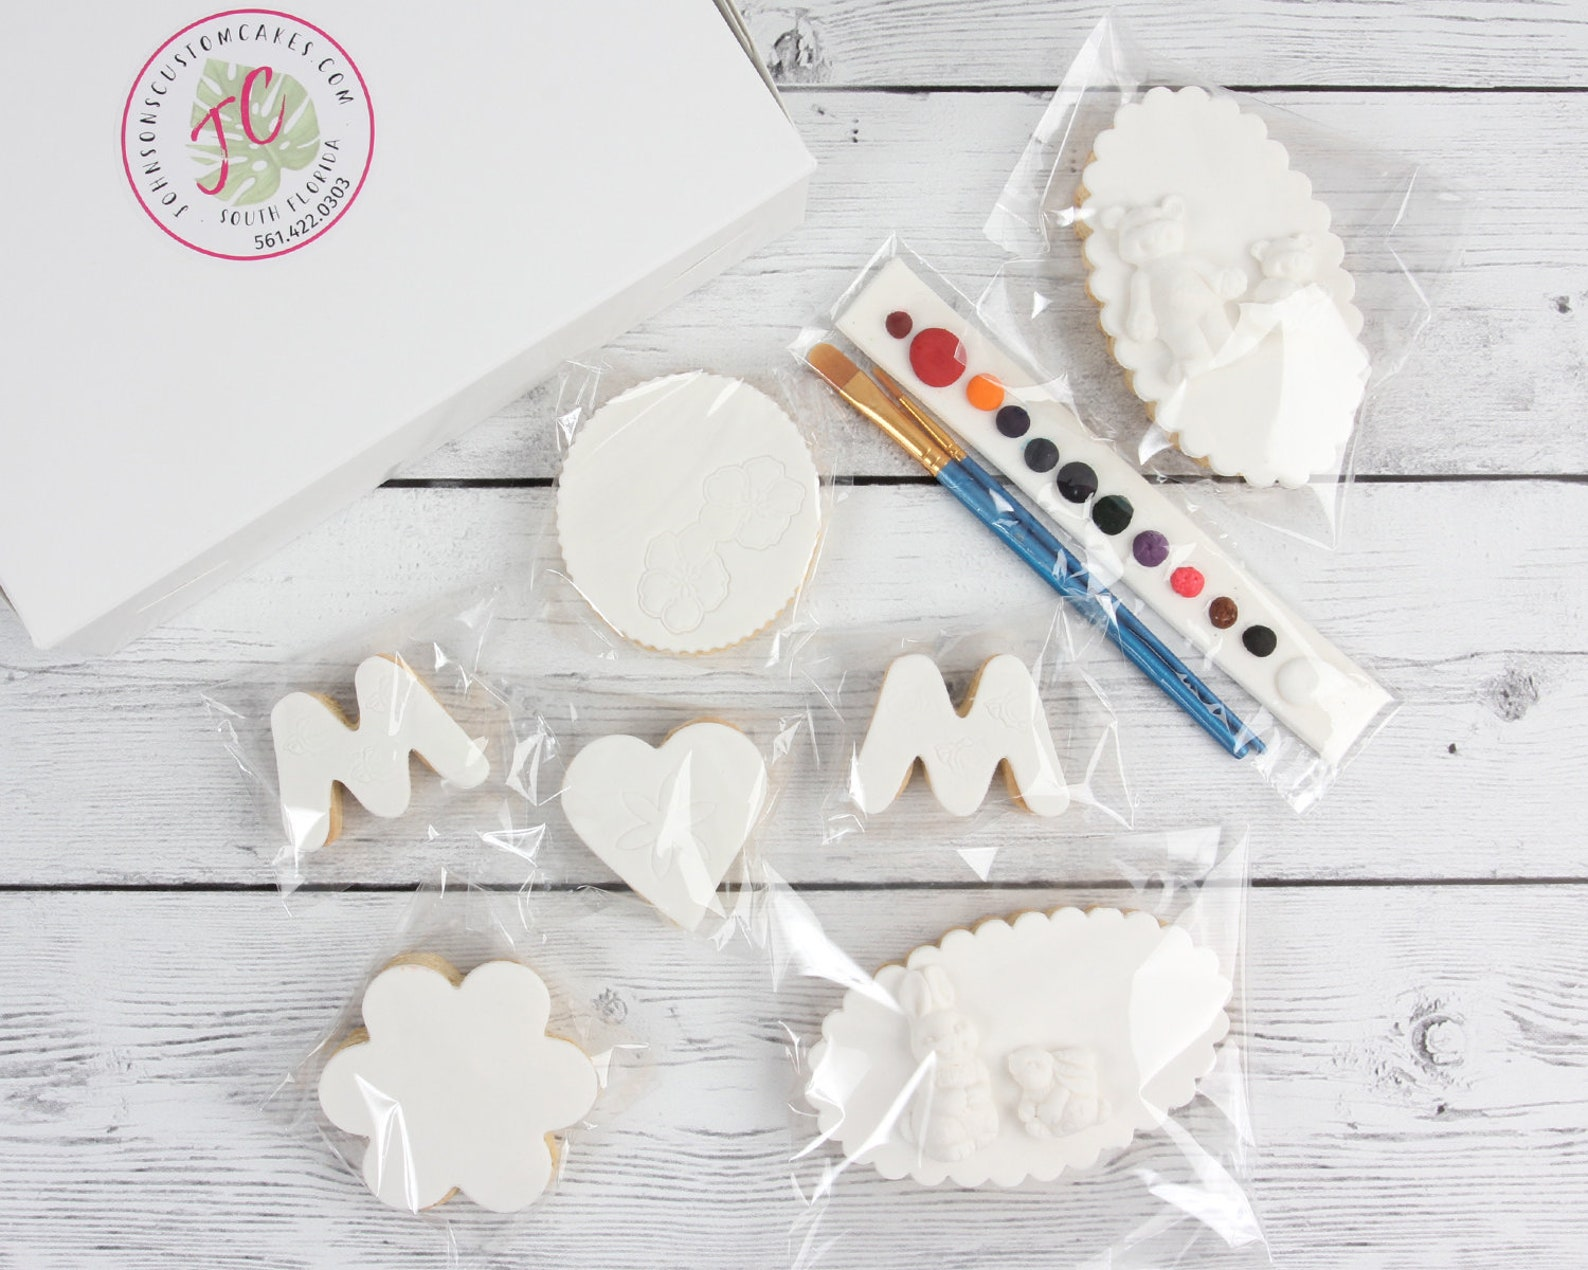 Decorate and Paint Your Own Mothers Day Cookies